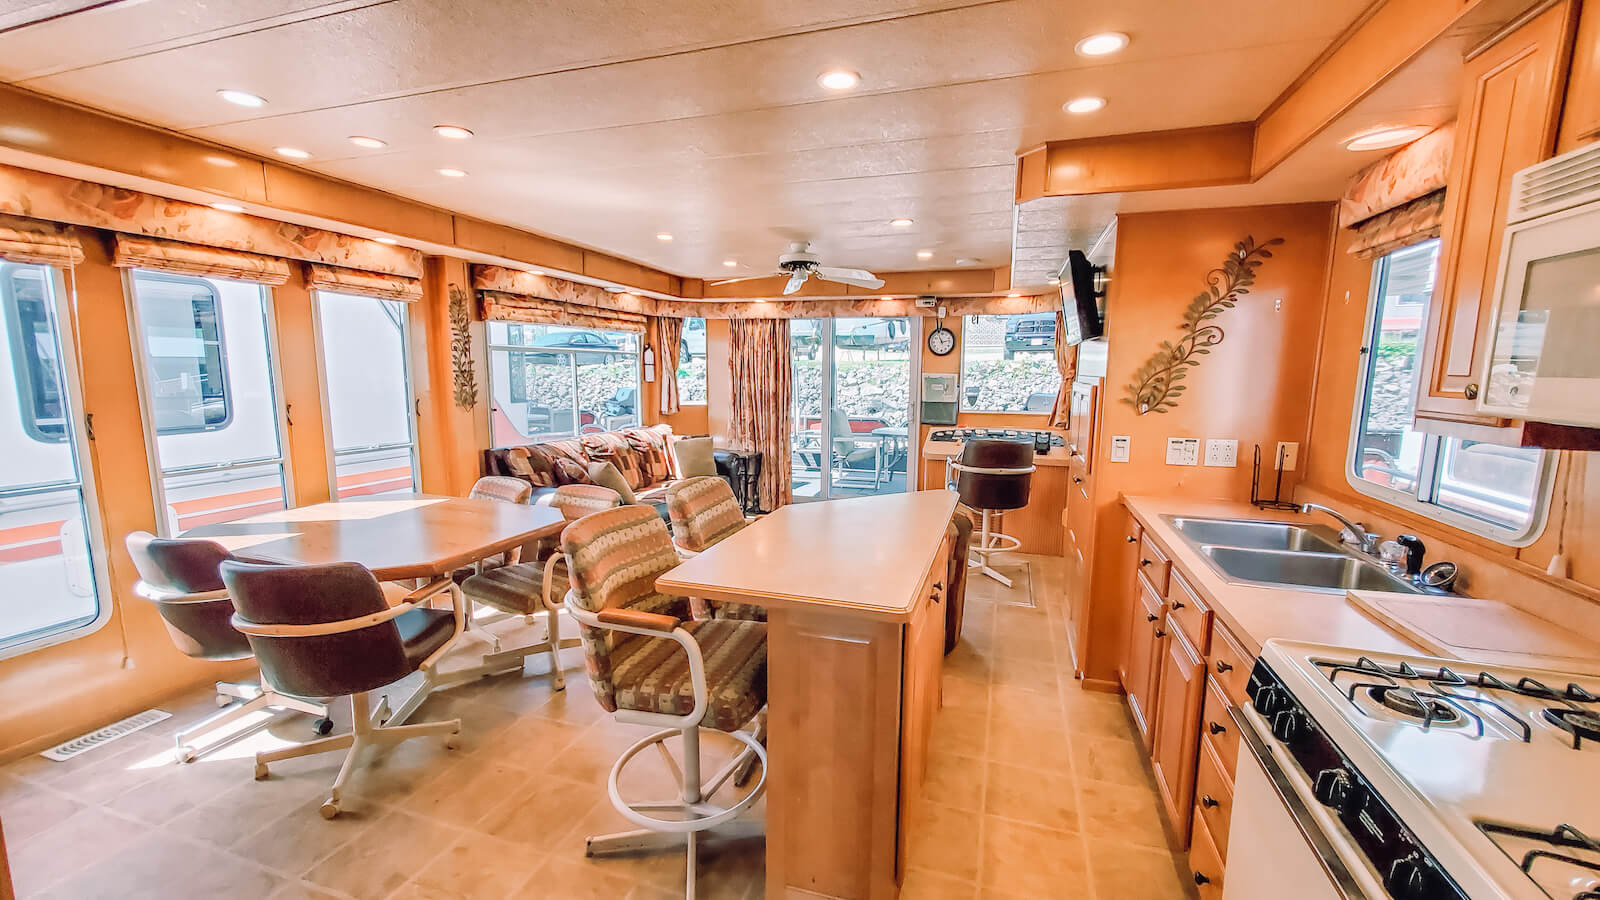 Living room and kitchen in the S&S Rentals Party Top Sharpe Houseboat